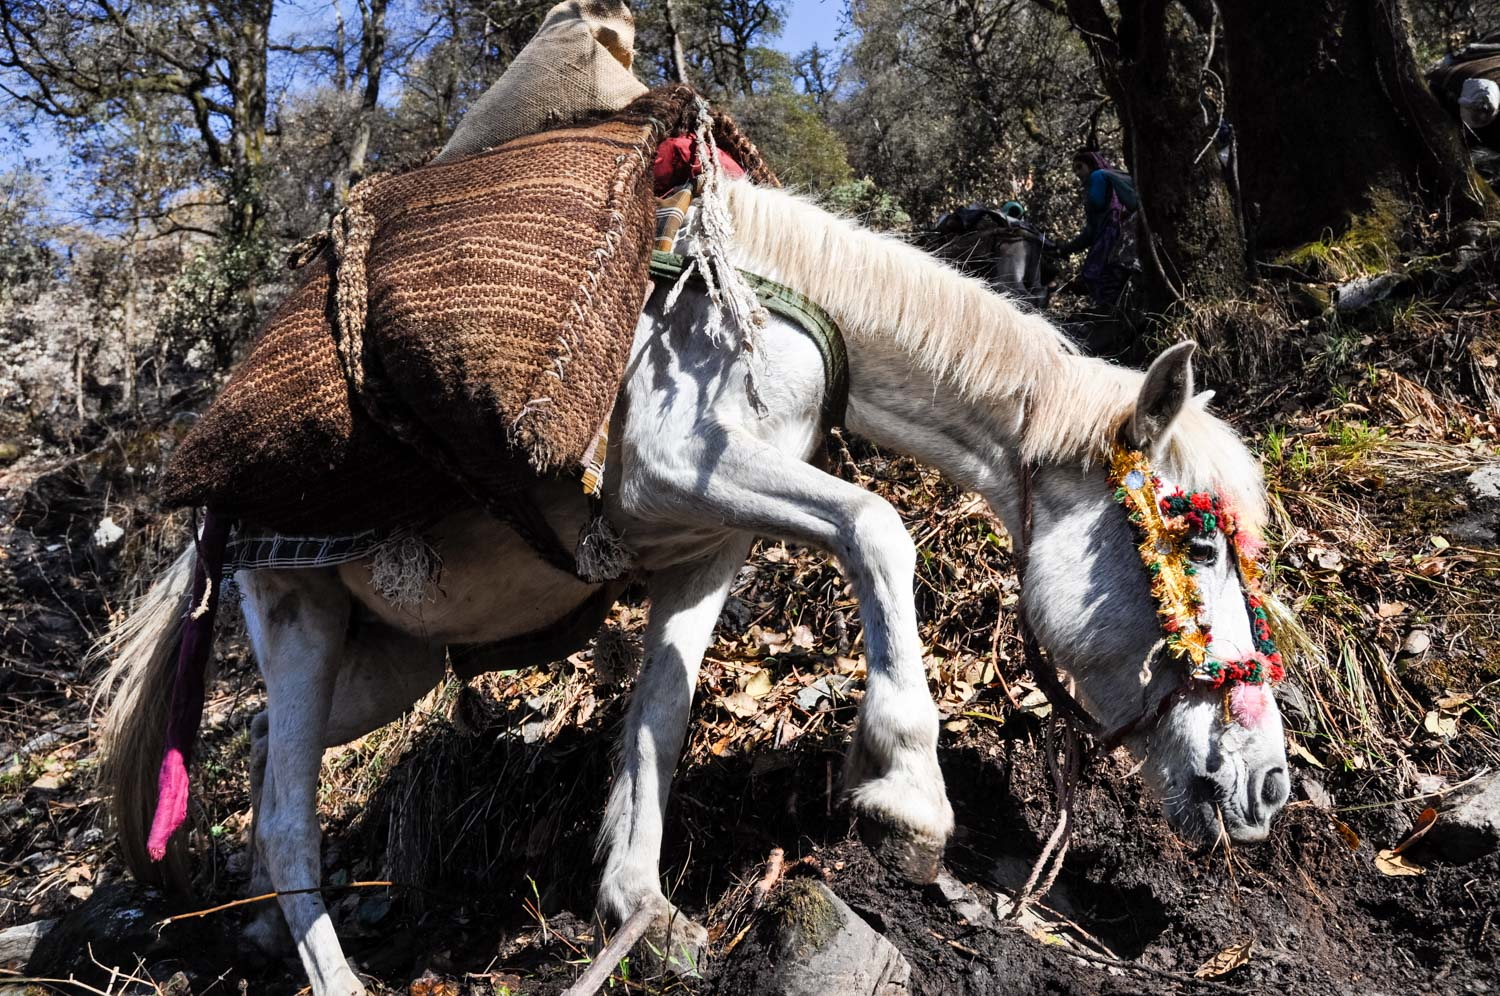 A pack horse makes its way up what only loosely meets the definition of a trail